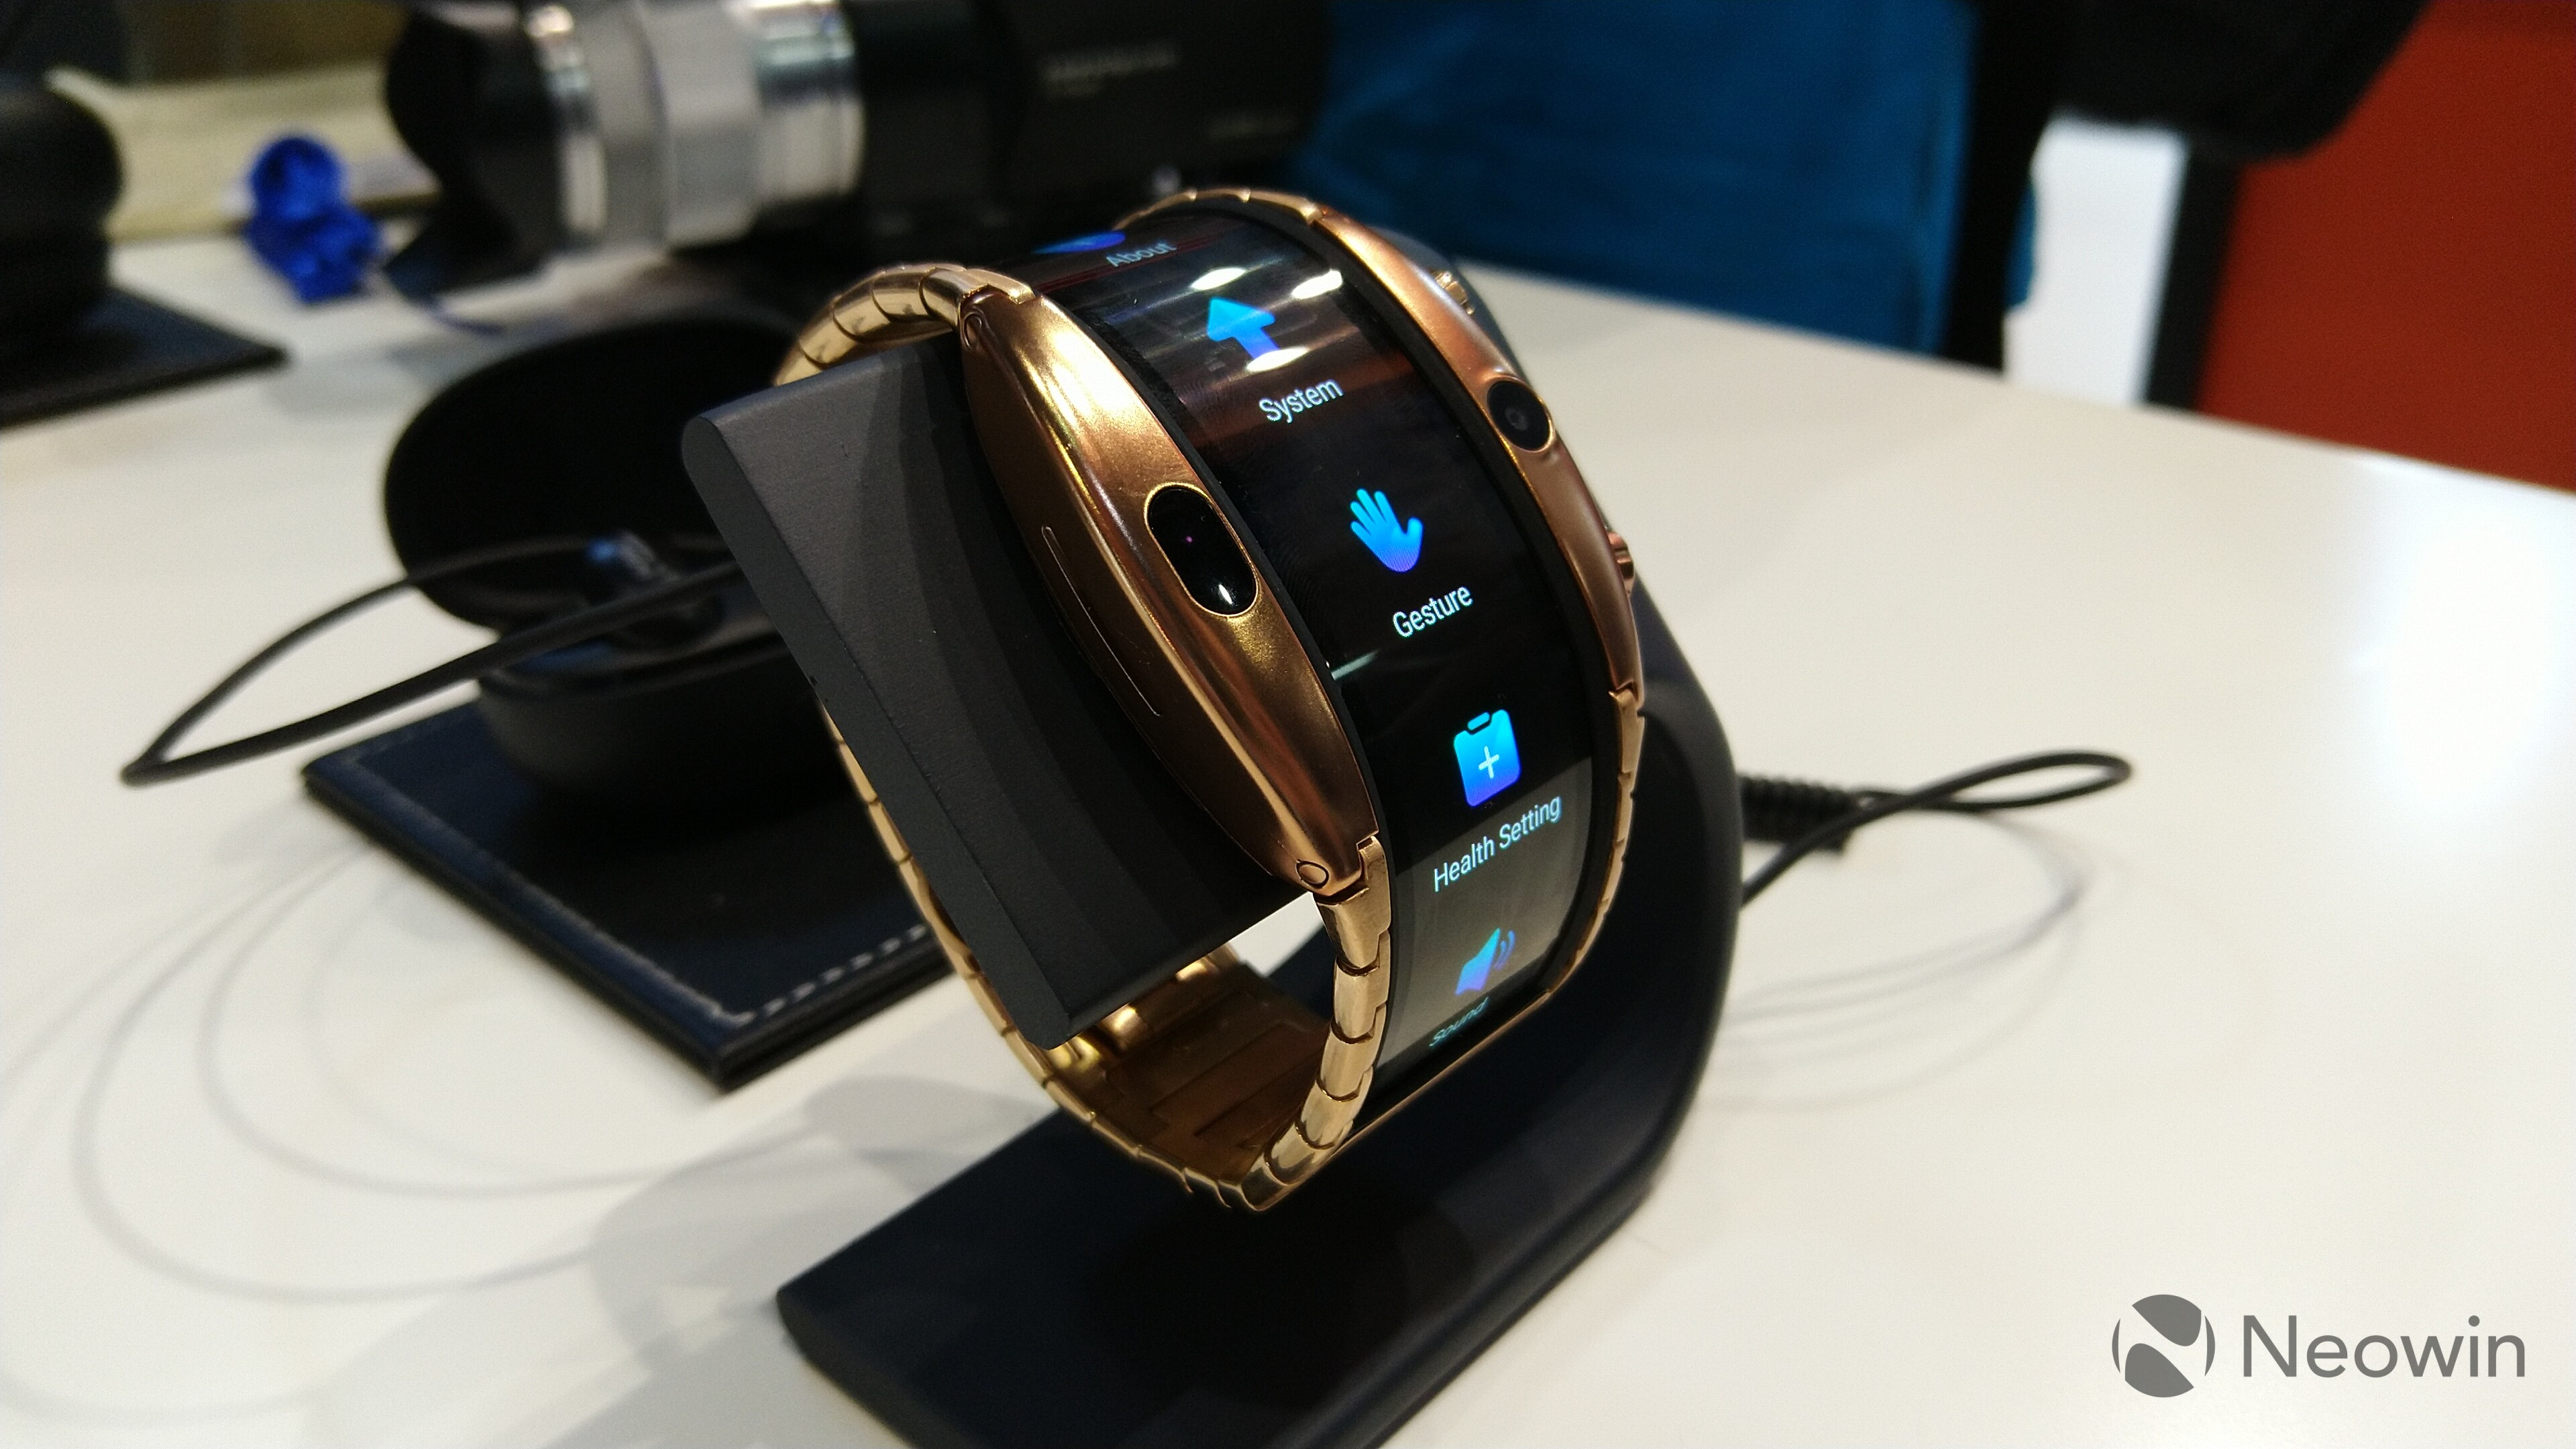 MWC 2019] The Nubia Alpha is a beautiful smartwatch with a foldable